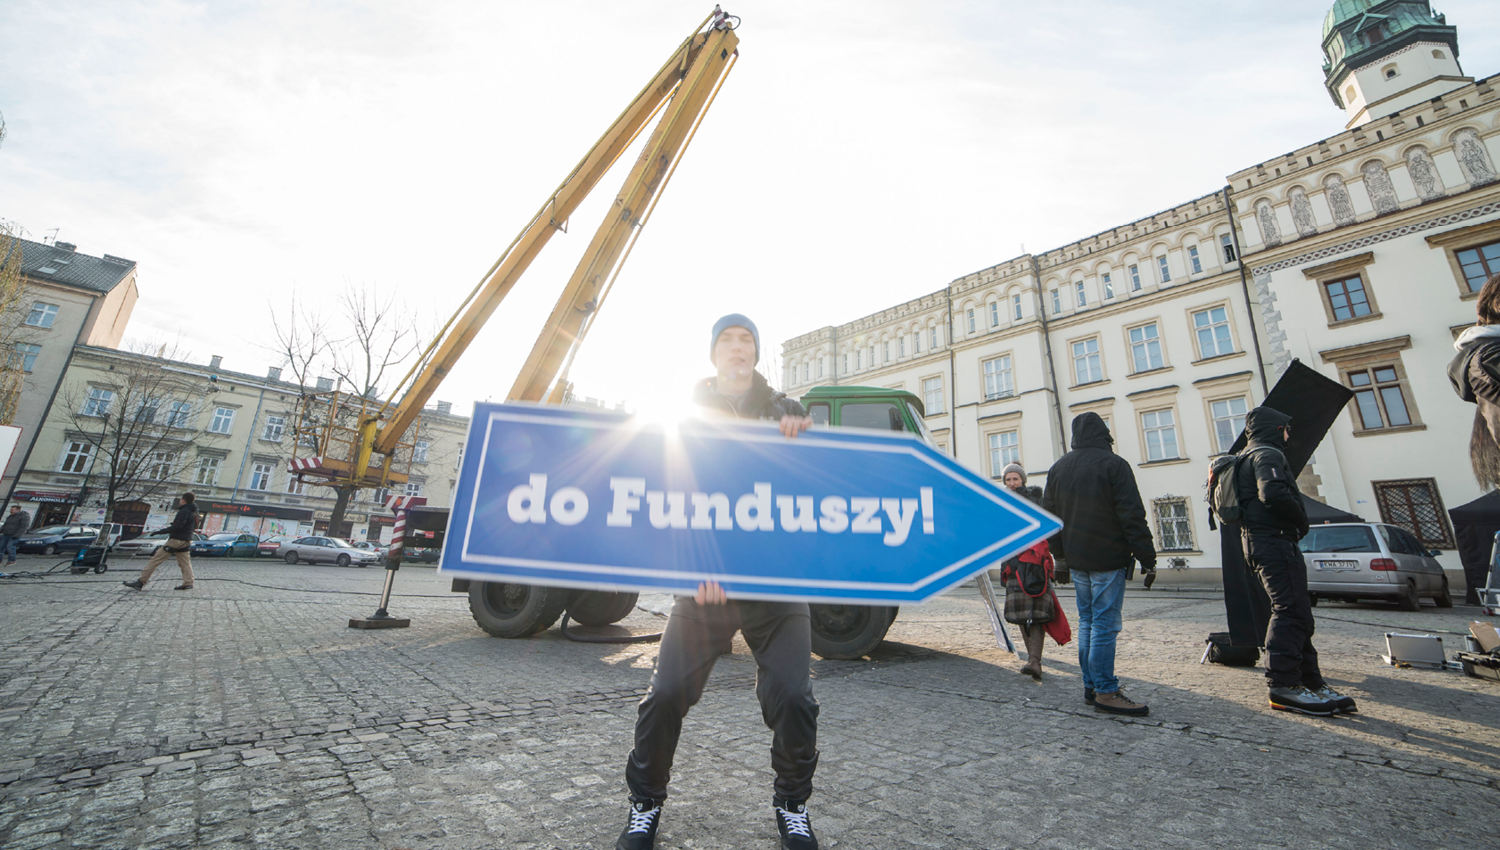 Eskadra - Straight to the funds! - Ministry of infrastructure and development